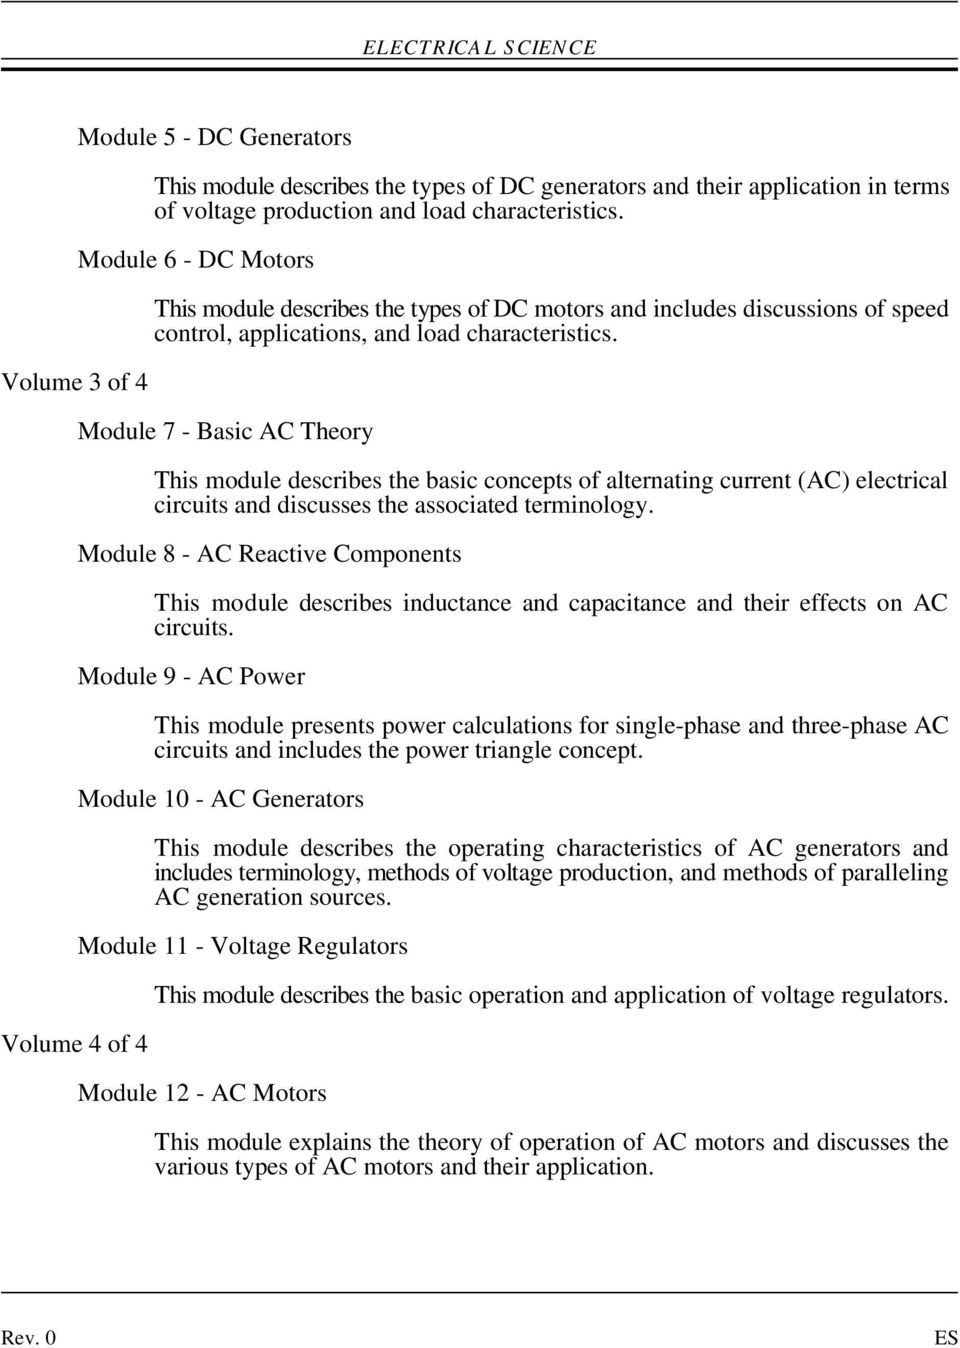 Module 7 - Basic AC Theory This module describes the basic concepts of alternating current (AC) electrical circuits and discusses the associated terminology.